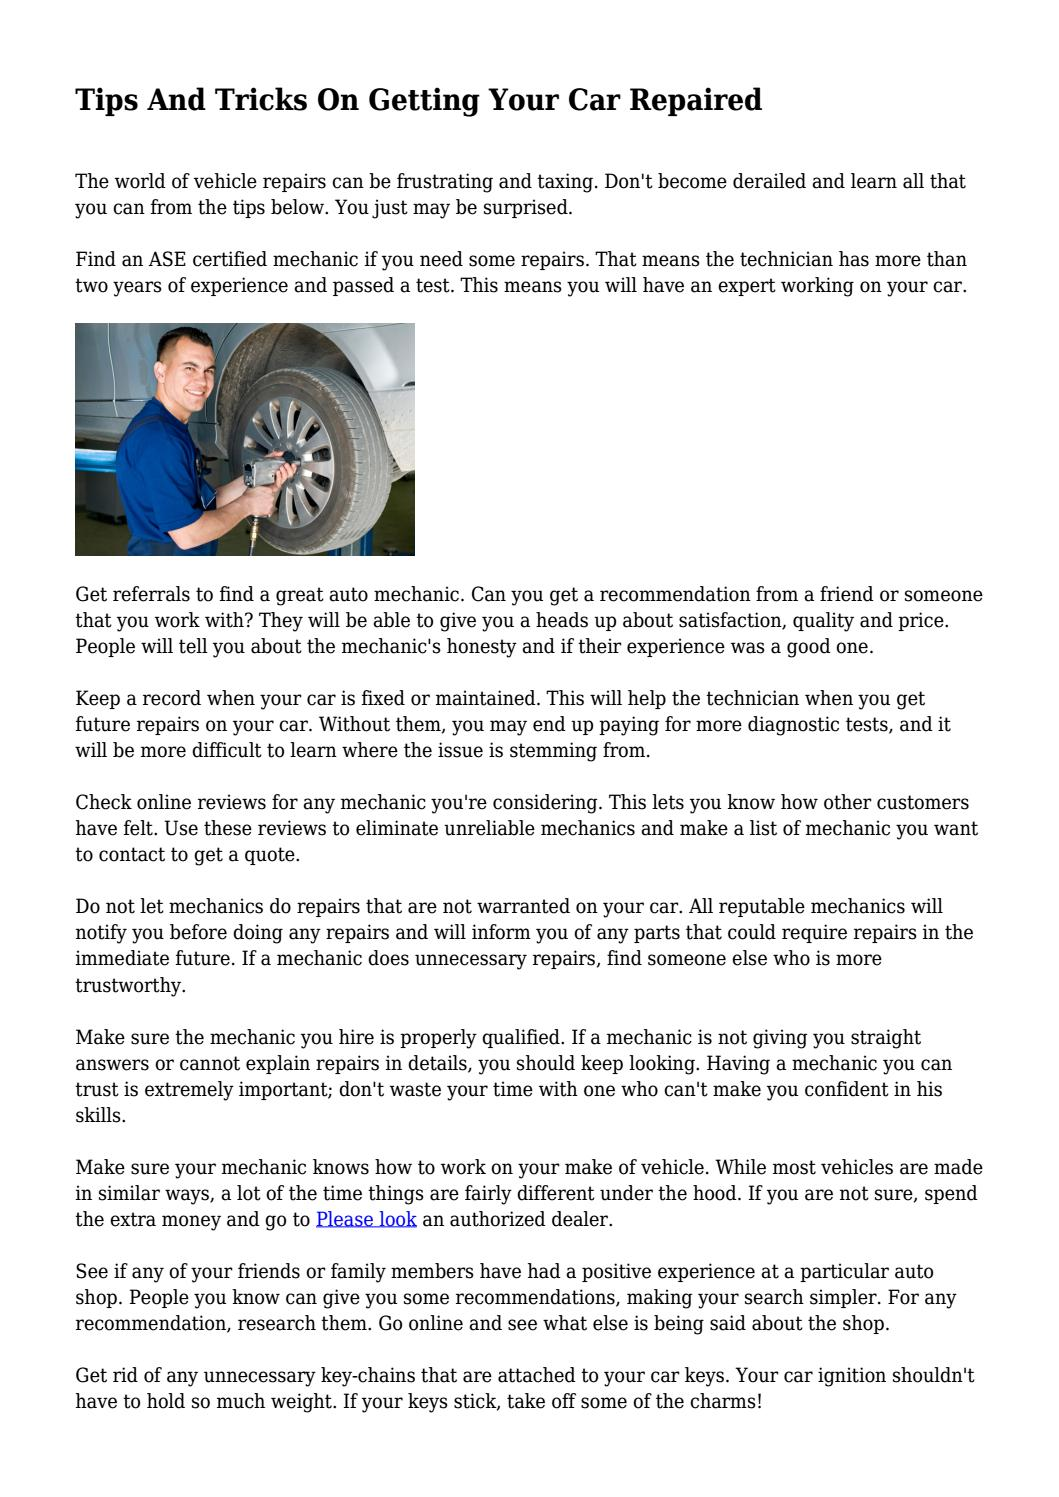 Tips and tricks on getting your car repaired by tips and tricks on getting your car repaired by meekhairstyle8576 issuu 1betcityfo Images